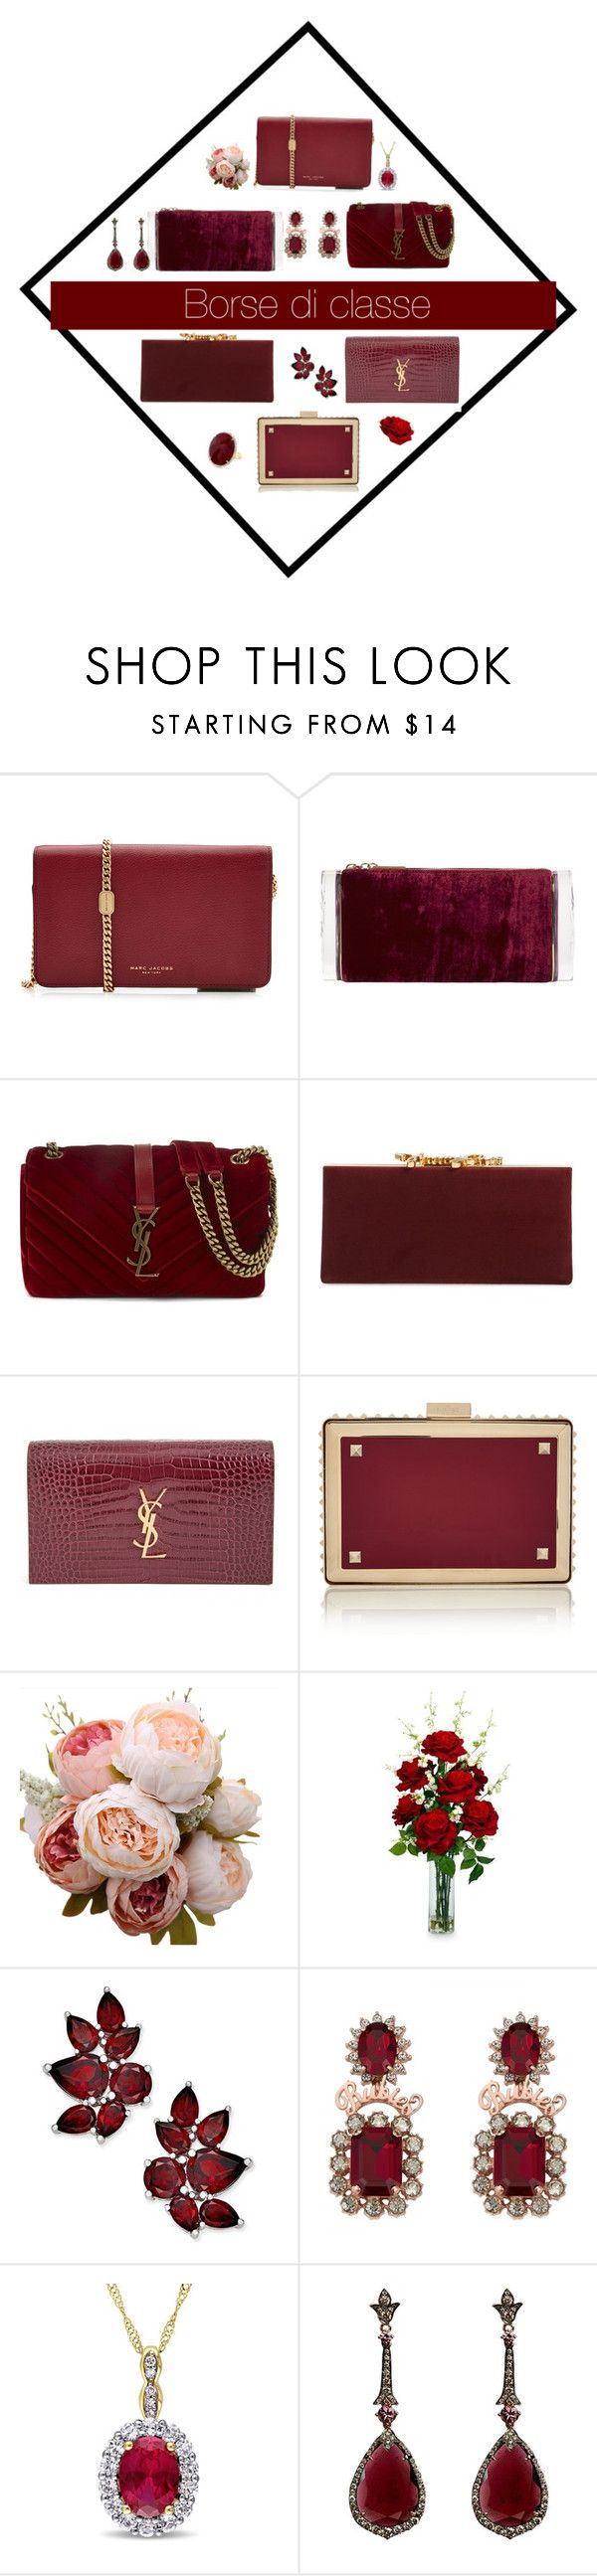 """""""Borse e gioielli di classe"""" by delfino-rosim ❤ liked on Polyvore featuring Marc Jacobs, Edie Parker, Yves Saint Laurent, Jimmy Choo, Valentino, Nearly Natural, Annoushka and Anne Sisteron"""